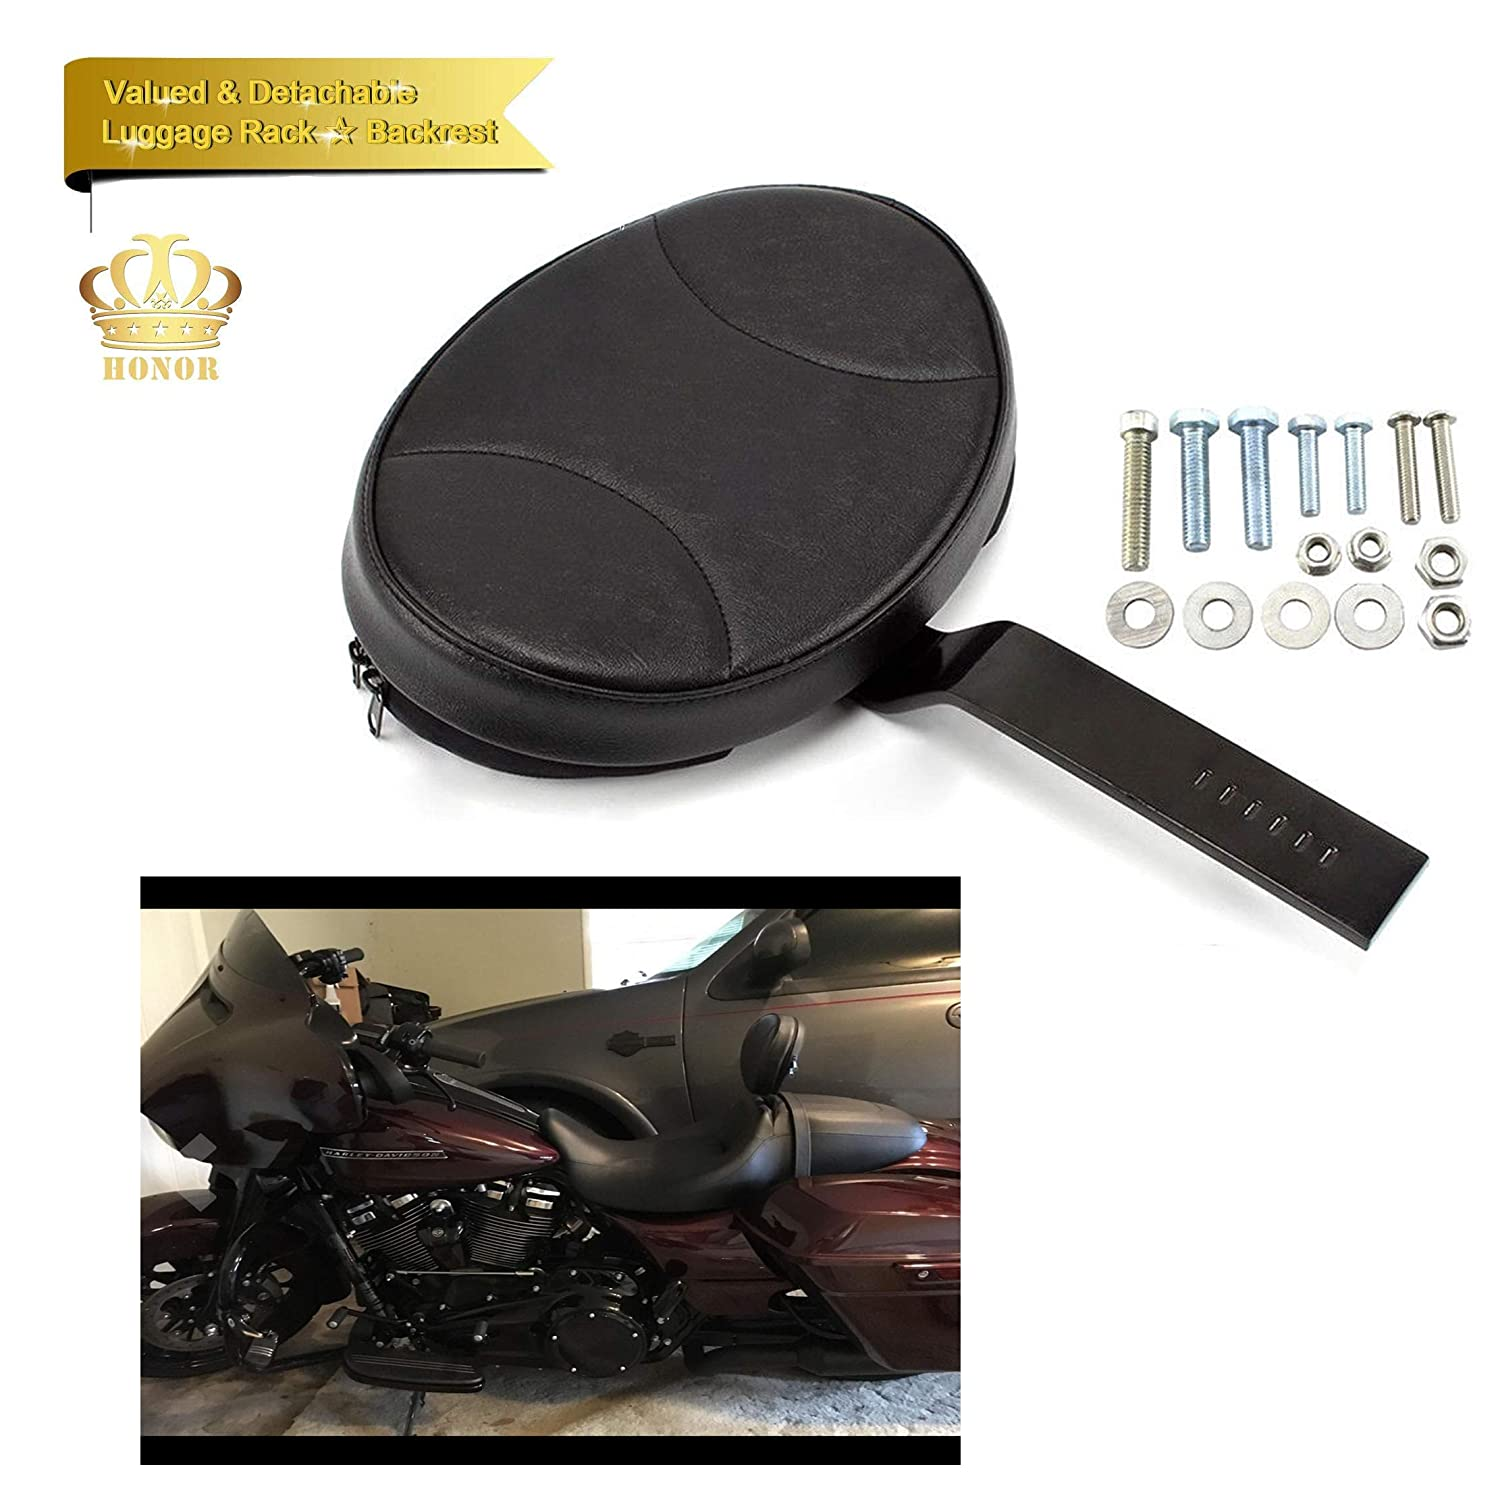 Honor Custom Made Driver Rider Backrest,Rider Sissy Bar For Indian Chief Chieftain Roadmaster Springfield 2014-2018